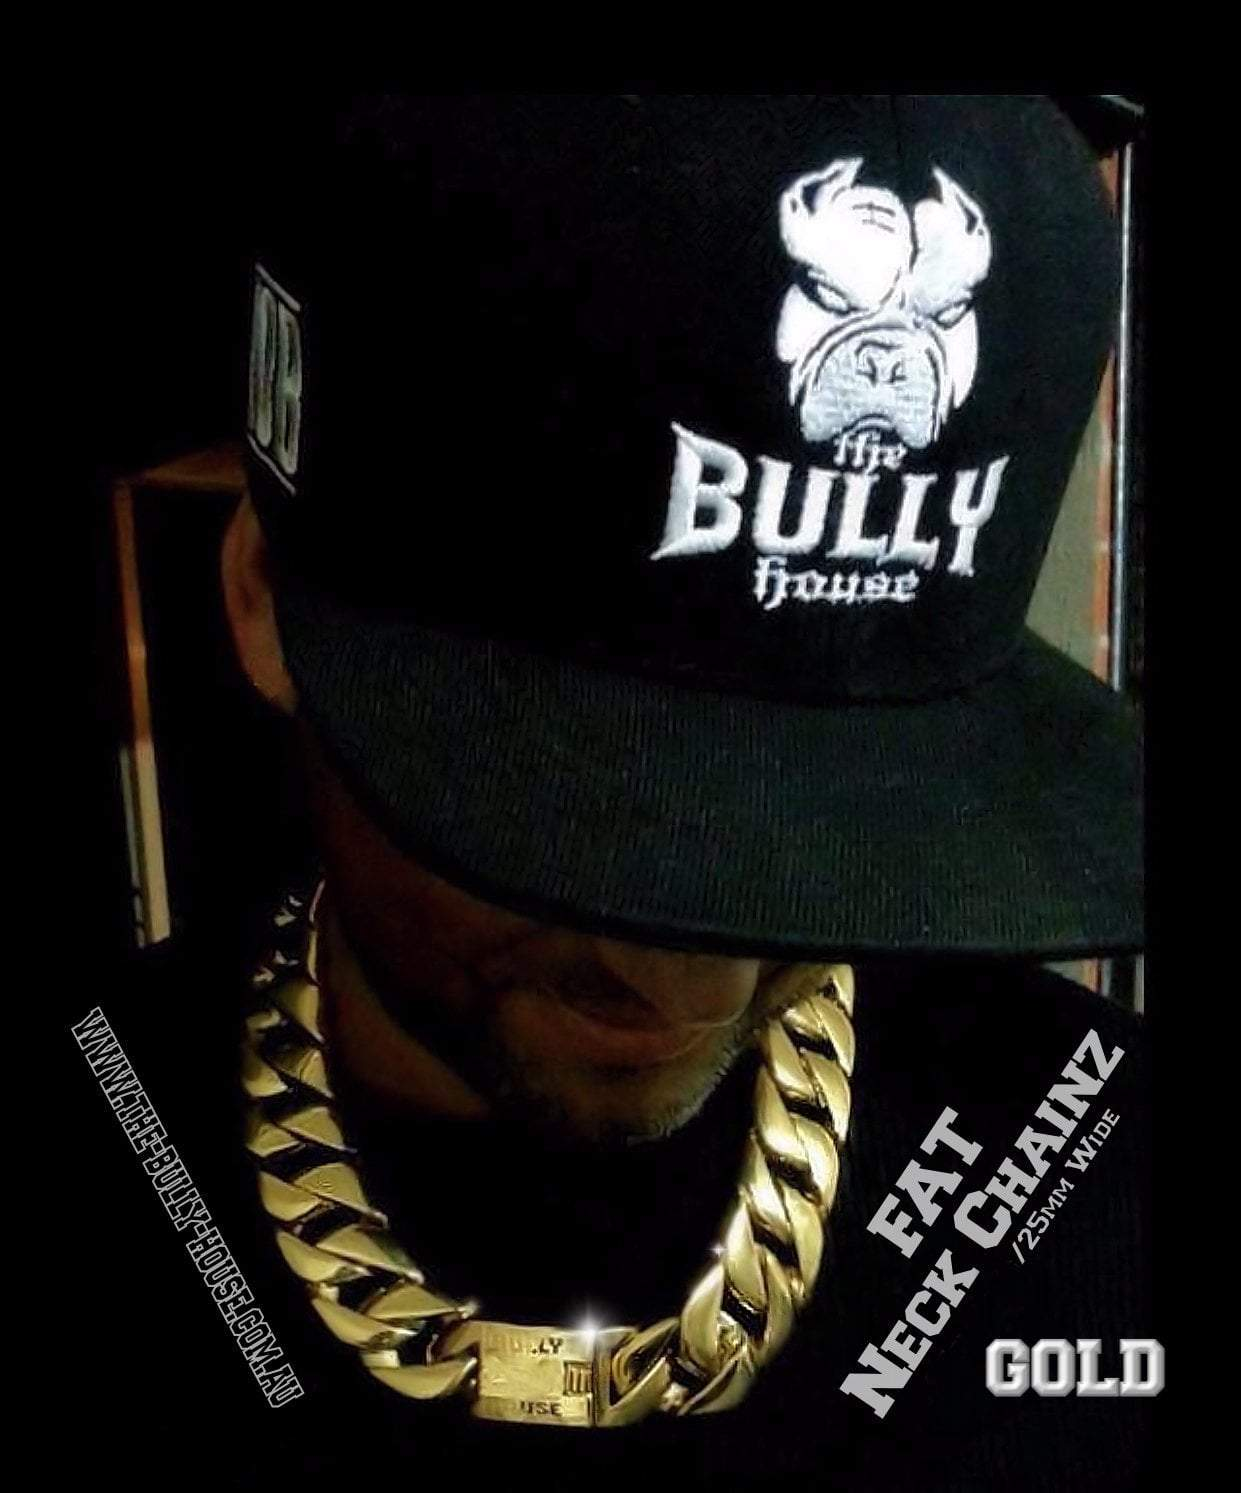 "FAT NECK CHAINZ Collection"" GOLD 25mm Wide NECKLACE - by the bully house (free shipping in OZ)"